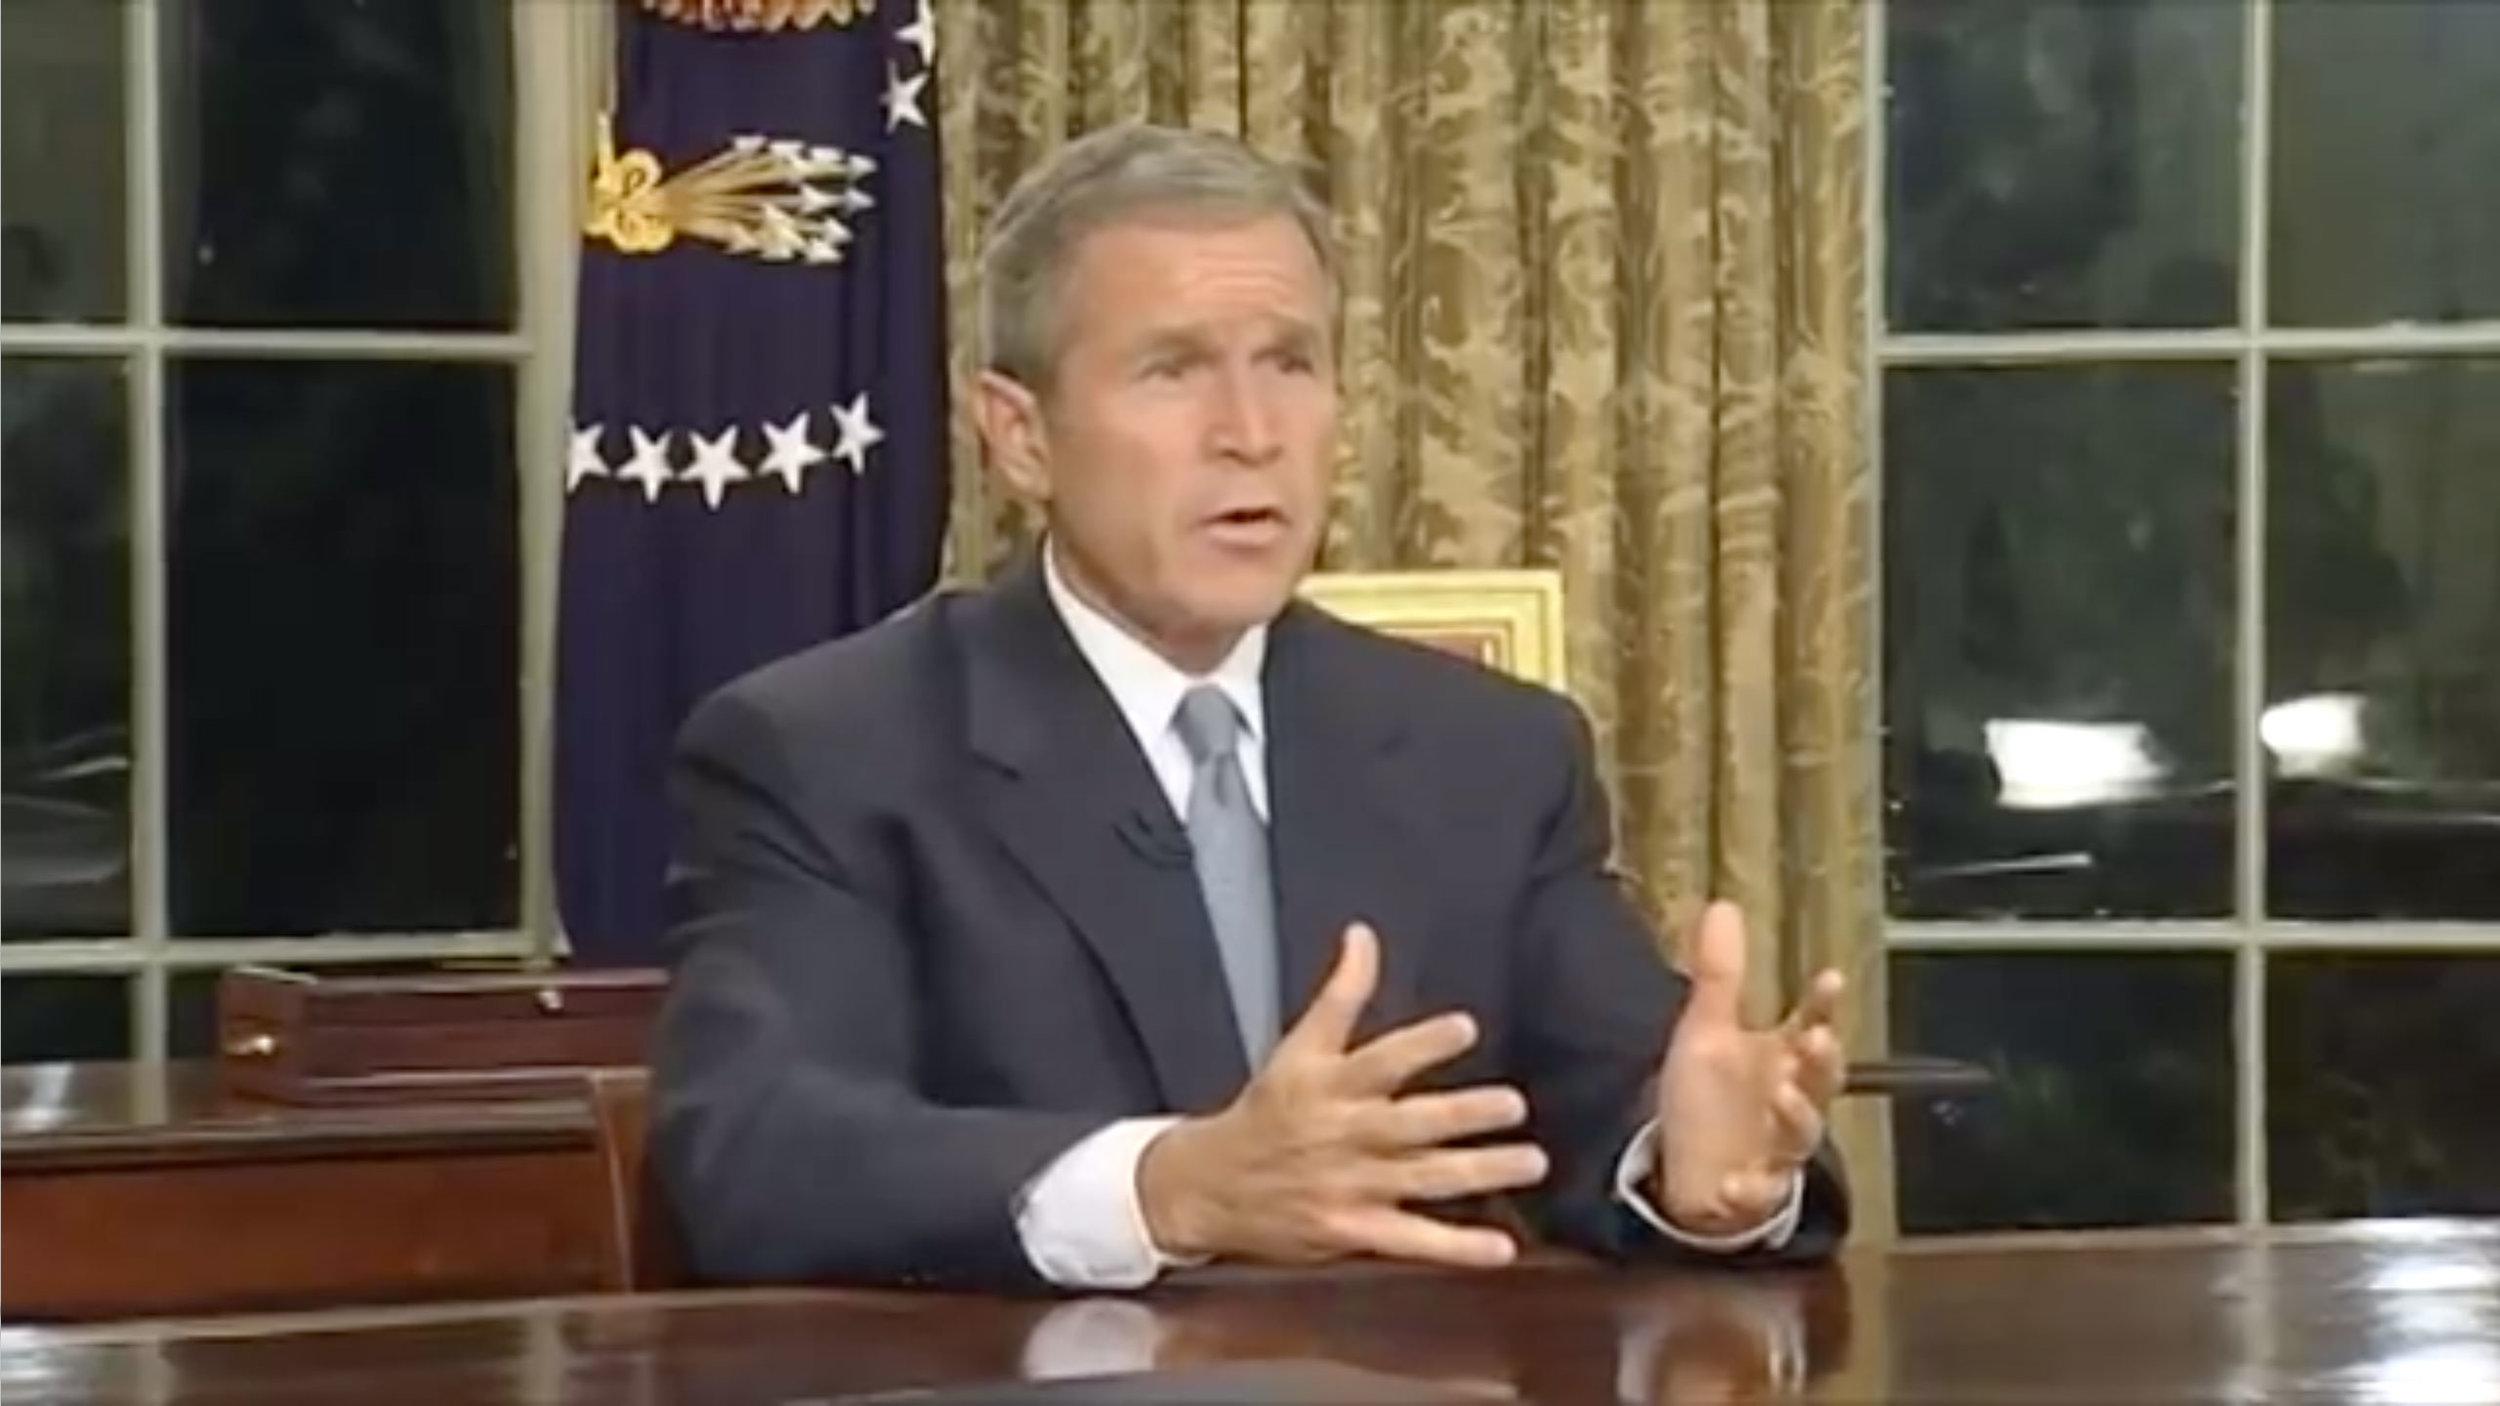 ( American Rhetoric ) Screenshot from President George W. Bush's  video address to the nation  on 9/11/01.